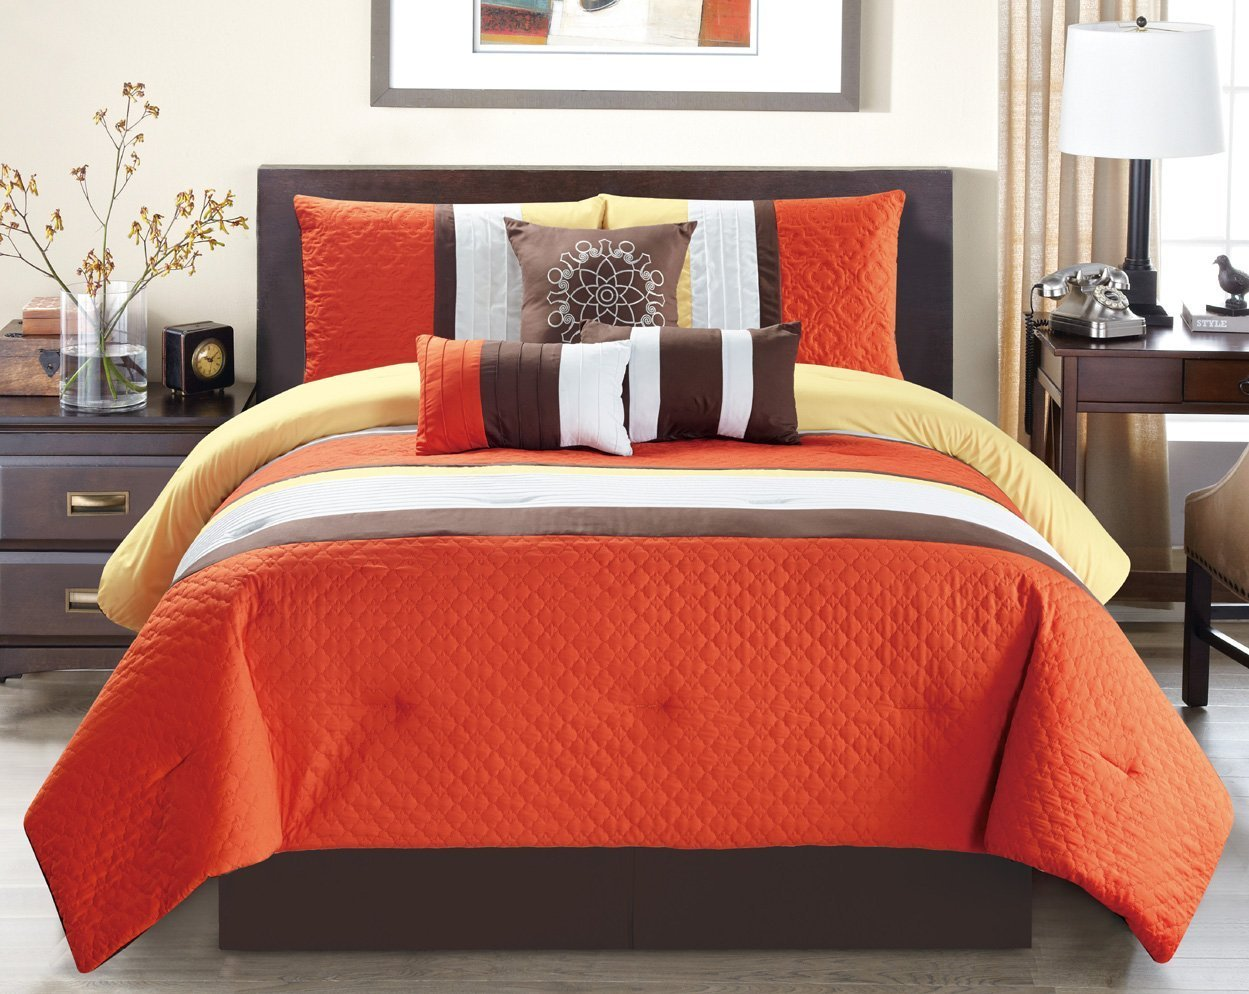 """Modern 7 Piece Oversize Orange / Brown / White Embroidered Pin Tuck Comforter Set King Size Bedding with Accent Pillows 104""""X94"""""""